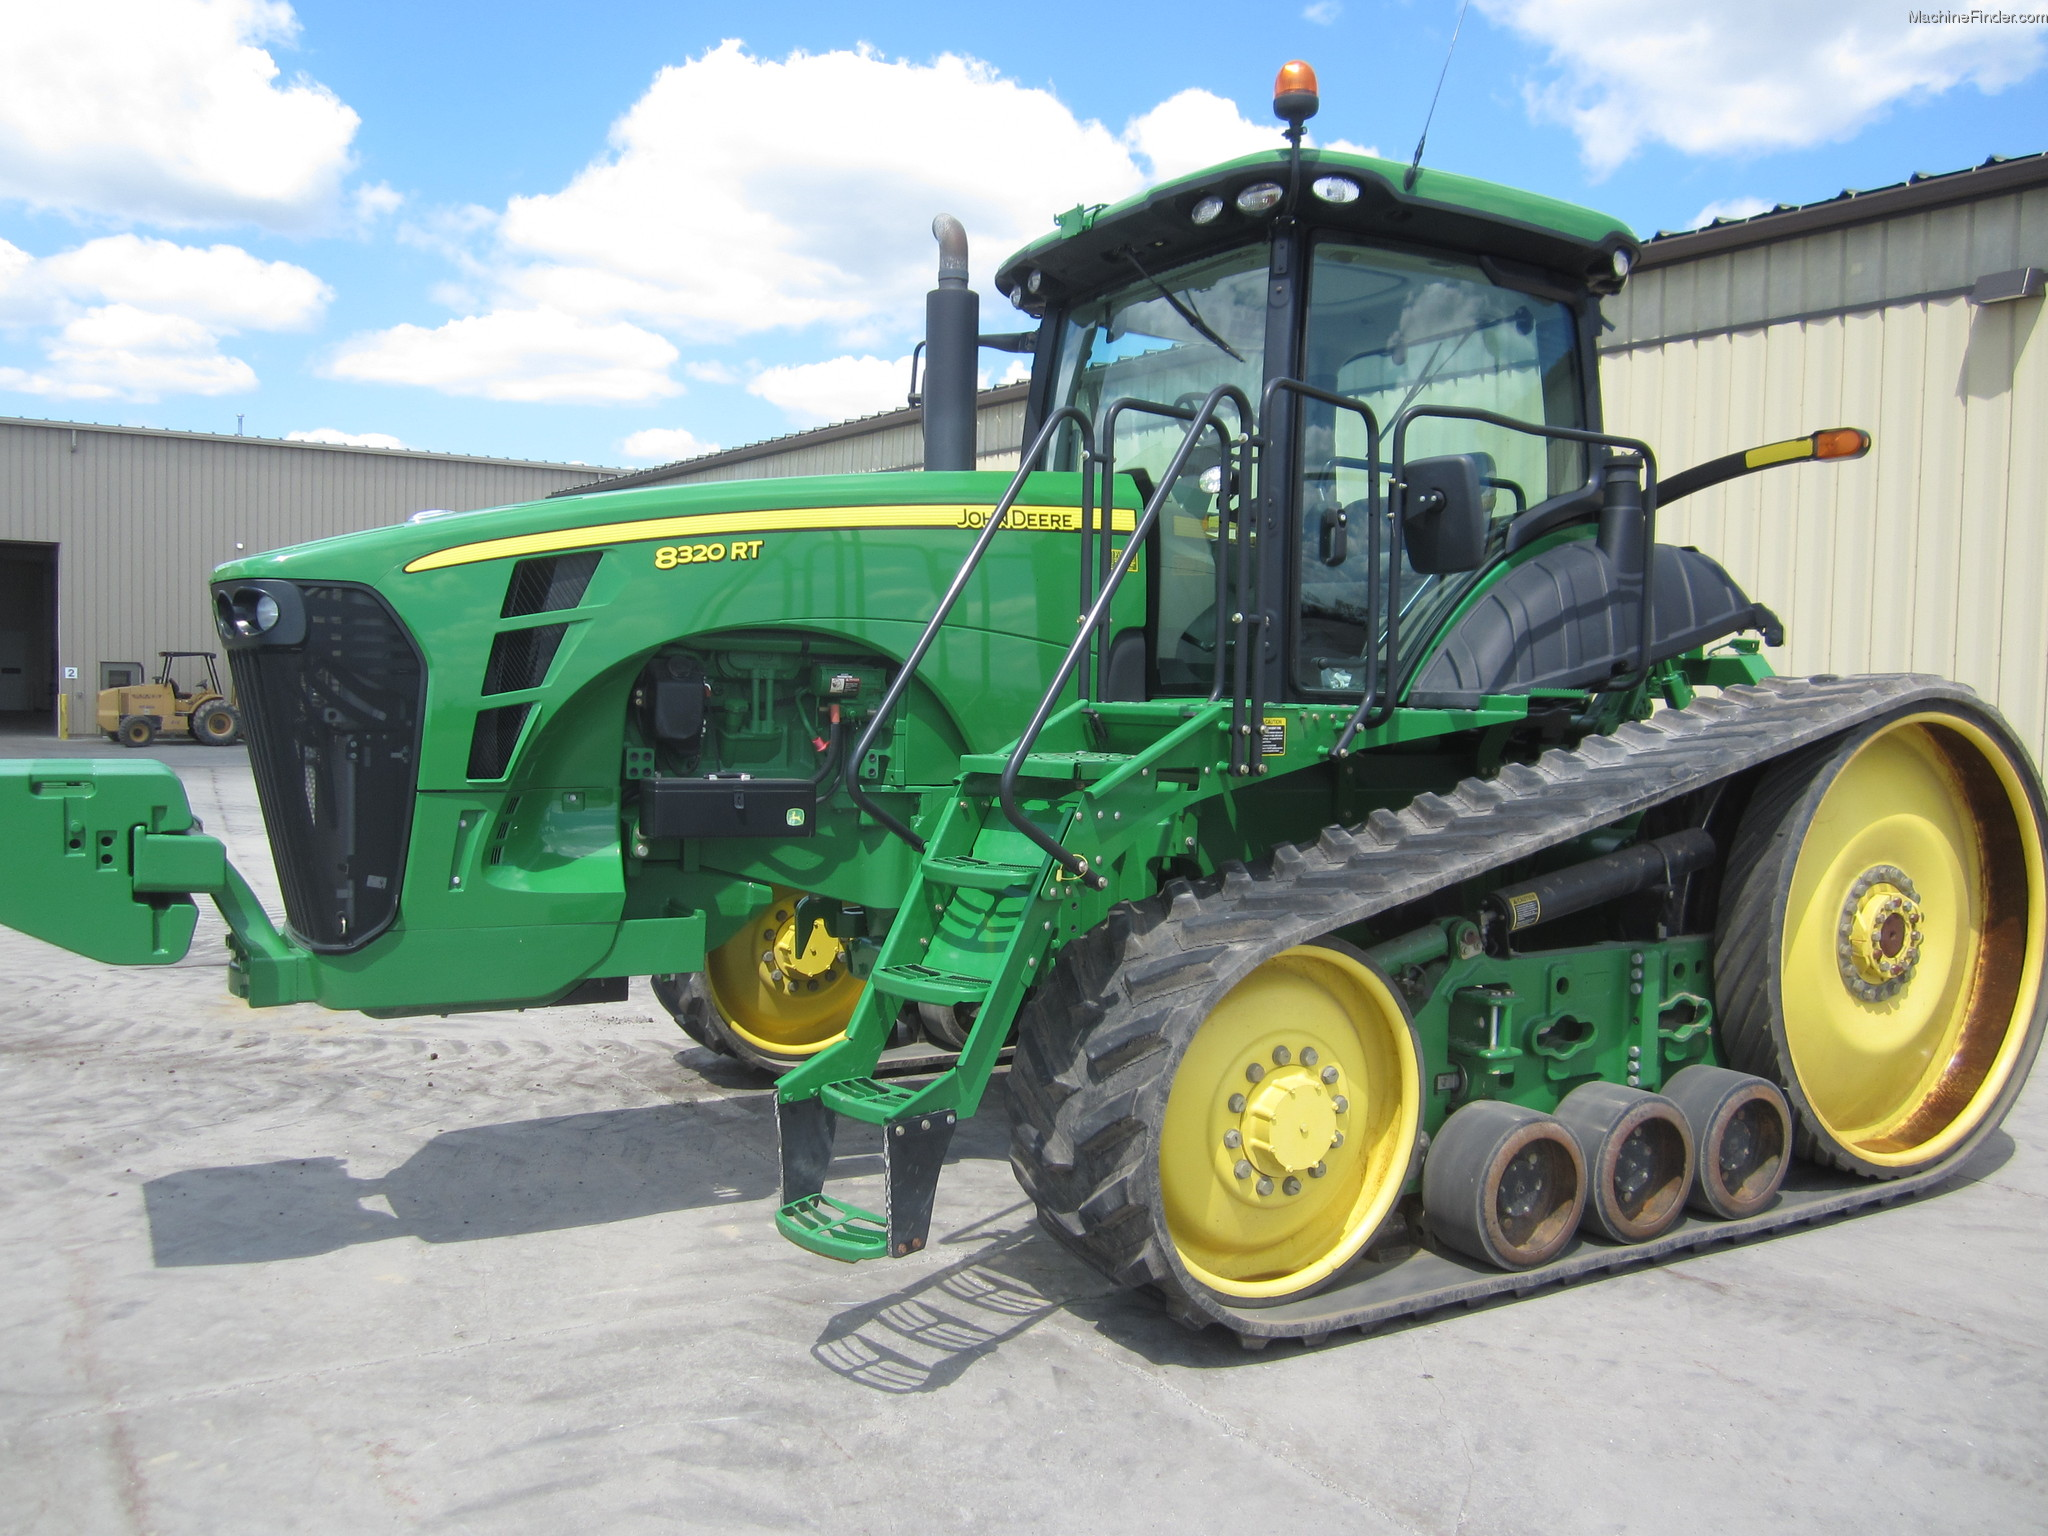 2010 John Deere 8320RT Tractors - Row Crop (+100hp) - John ...